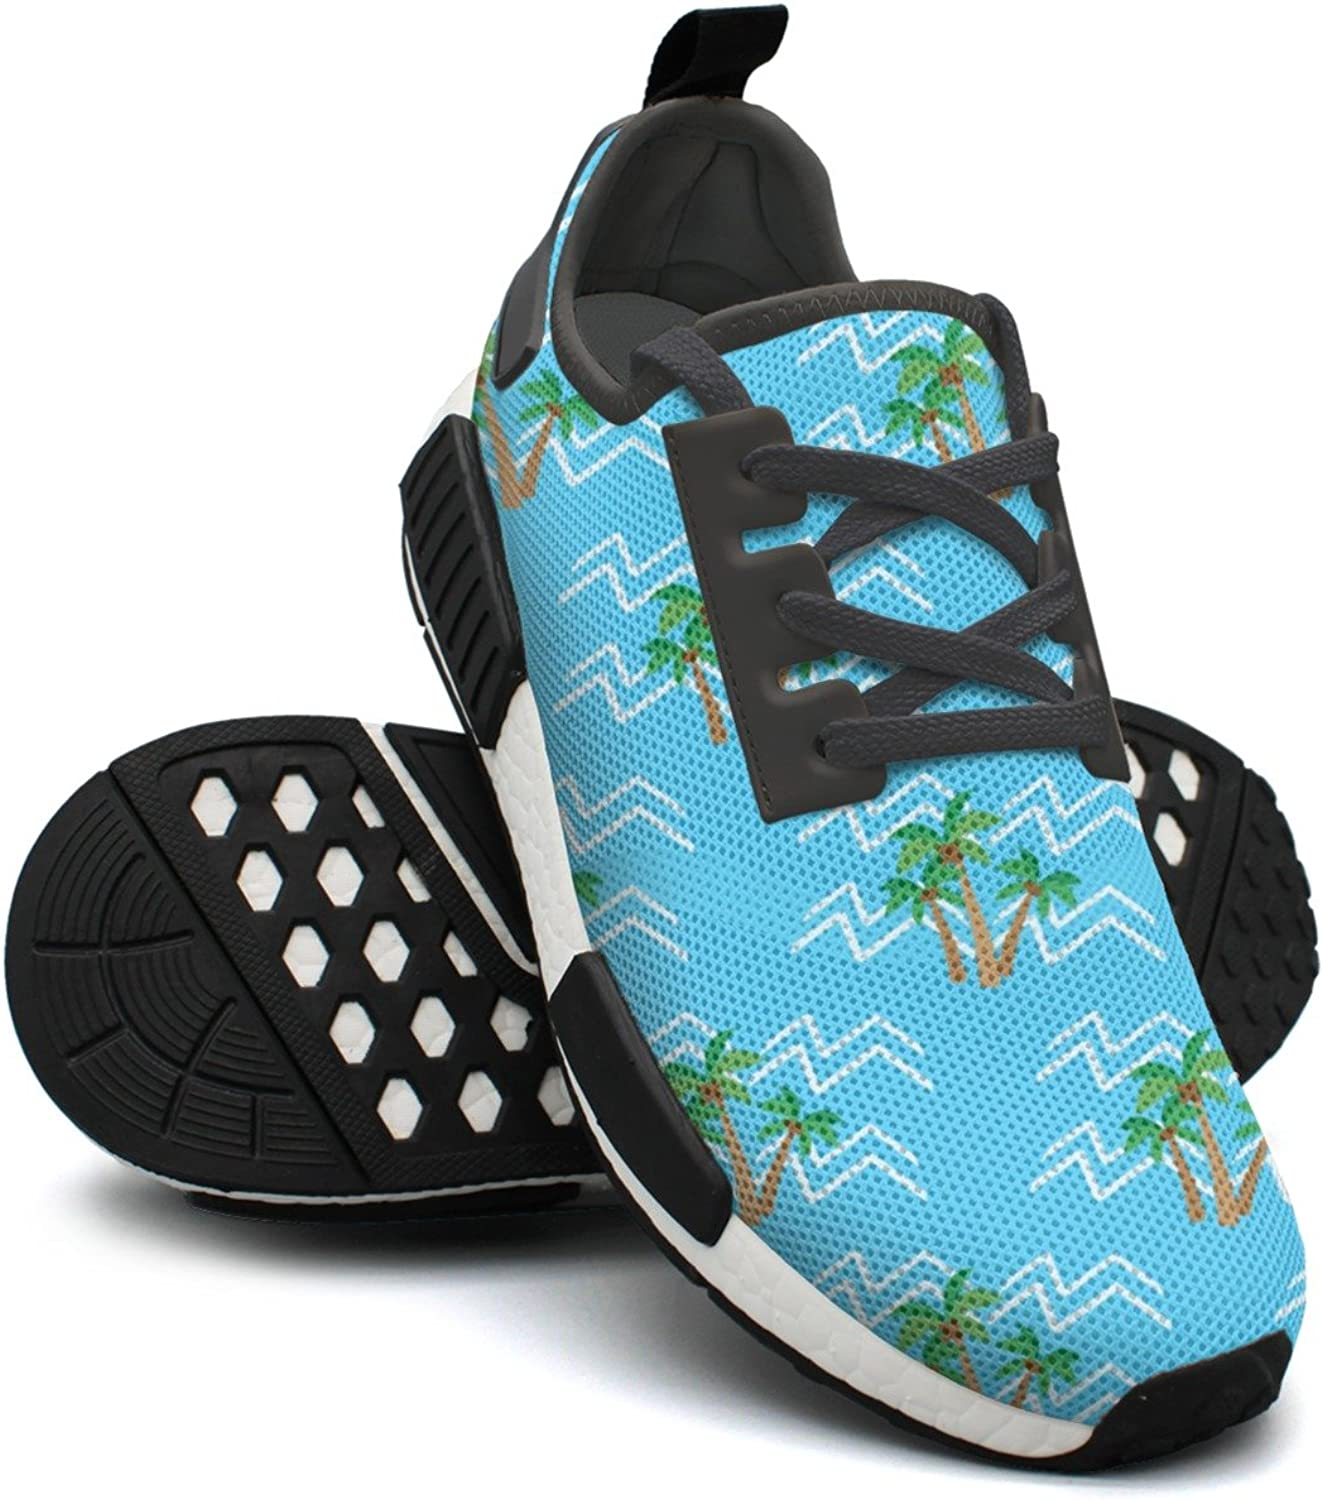 Tropical Coconut Palm Trees Printed Lace-up Running shoes Nmd Sport Casual shoes